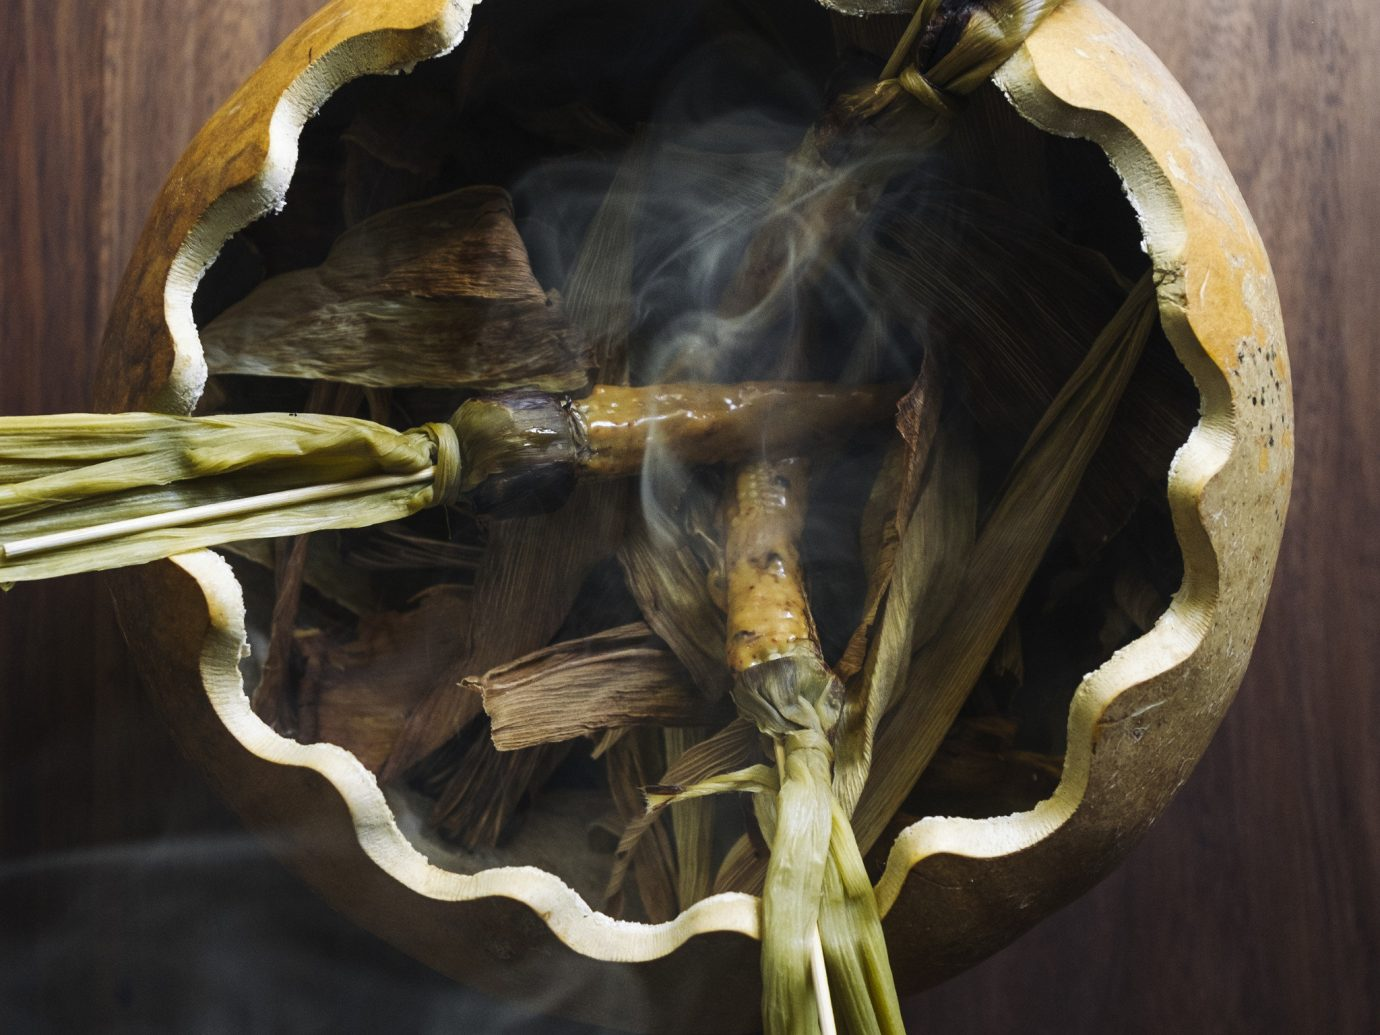 Trip Ideas leaf macro photography flower wood horn sculpture produce antler outdoor object